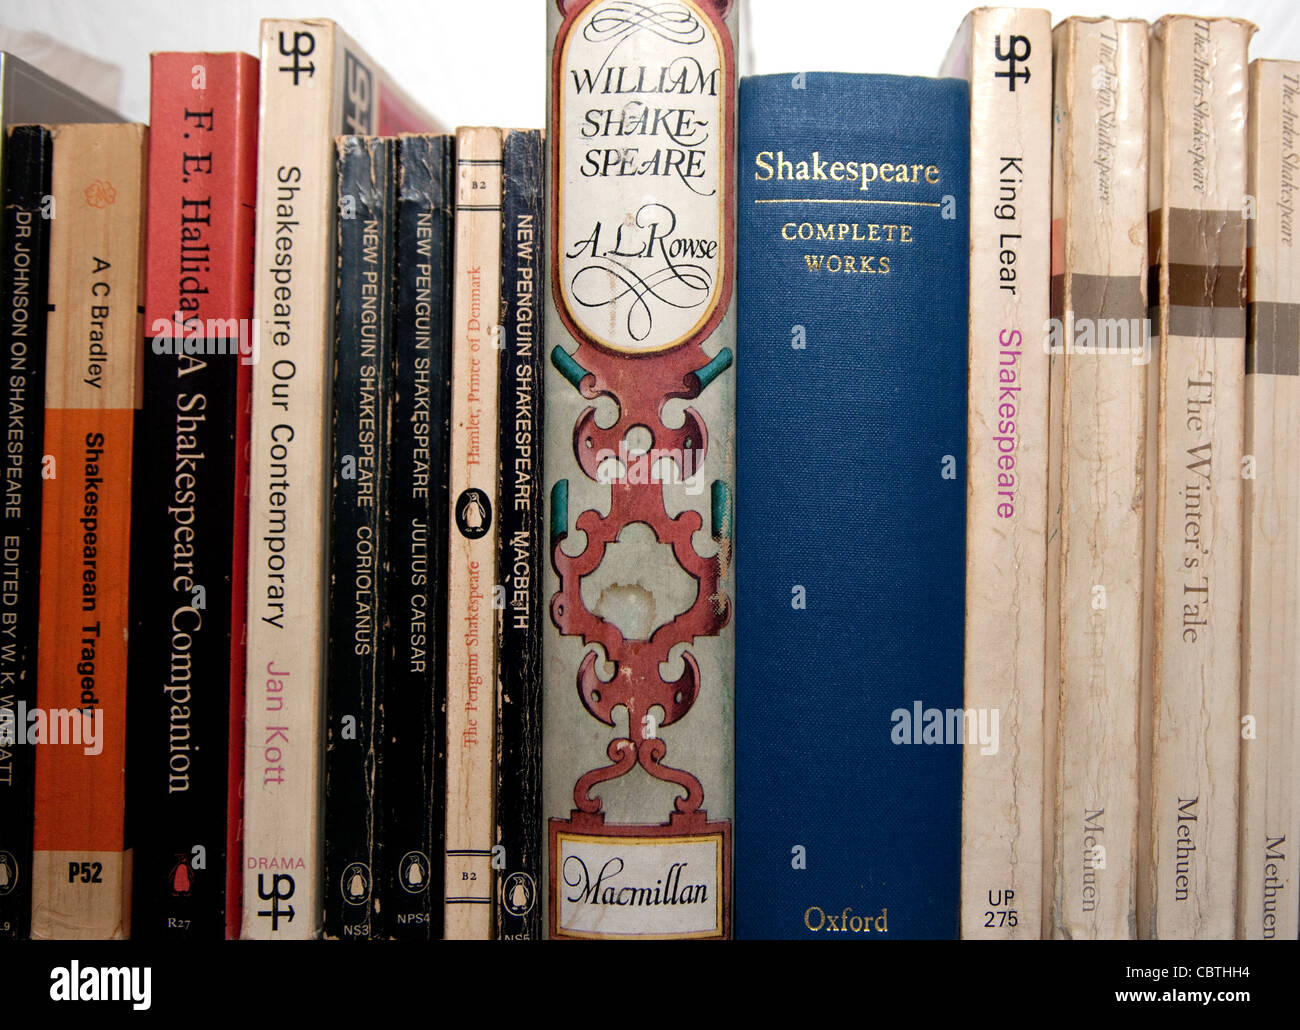 William Shakespeare - plays and critical works, Londono - Stock Image